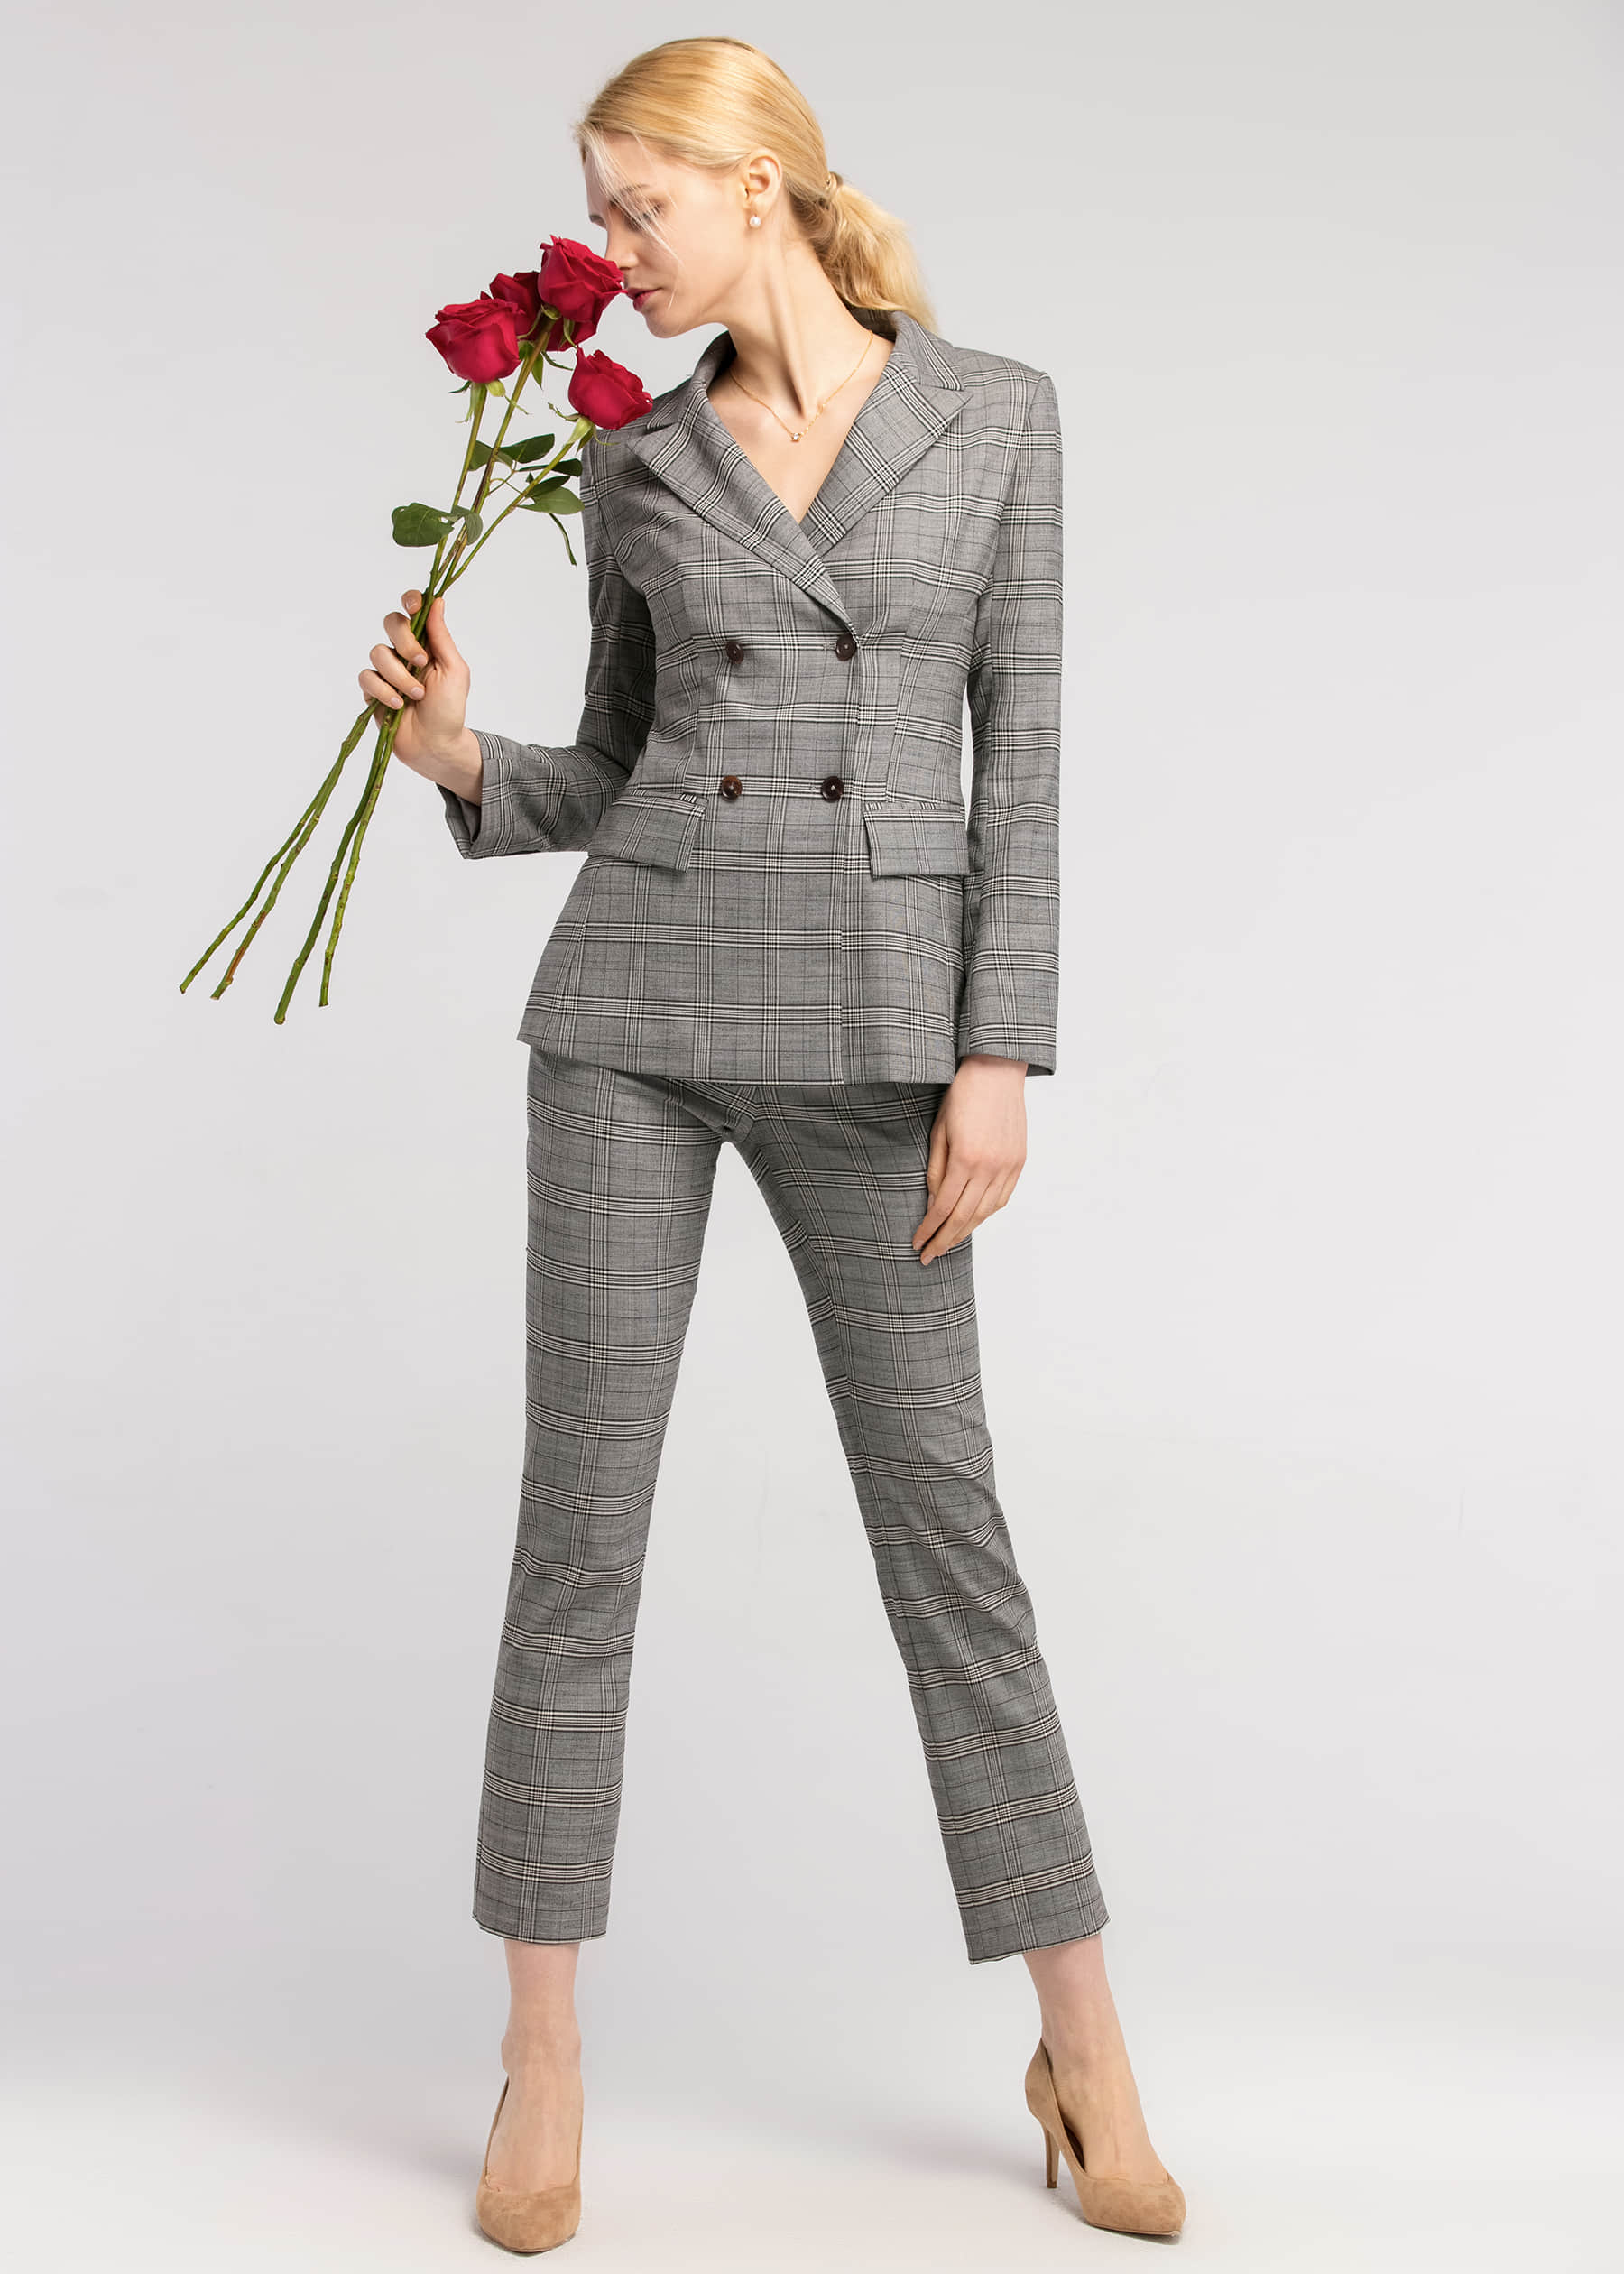 Comfortable and Chic in Silk Liner Suit